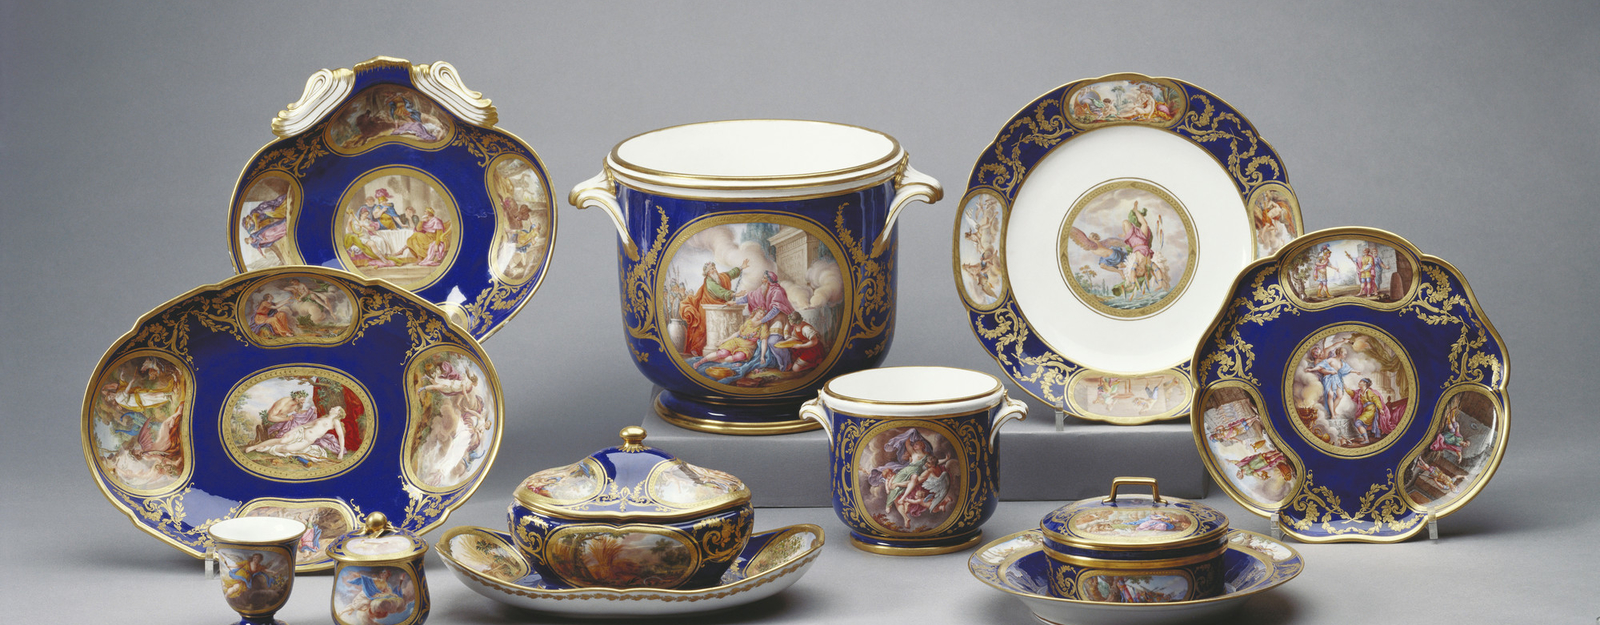 This service, of which the items in the Royal Collection form part,was themost costly and sumptuousever created at Sèvres in the eighteenth century.It was intended to take 23 years to complete and was the swansong of the gre